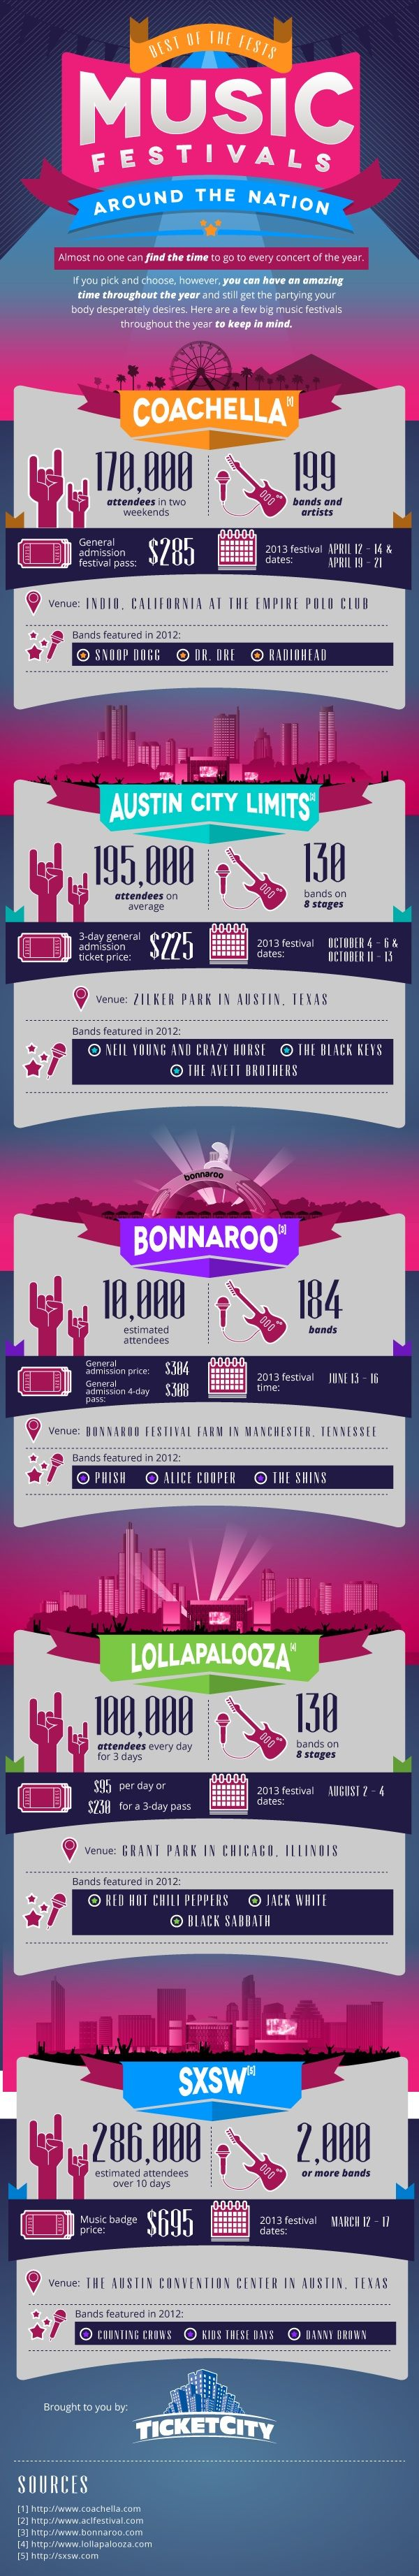 For all you music lovers out there, today's infographic compares and analyzes the top 5 music festivals in the United States per Ticket City, an American ticket broker and online marketplace. California's Coachella, brought to you by the Empire Polo